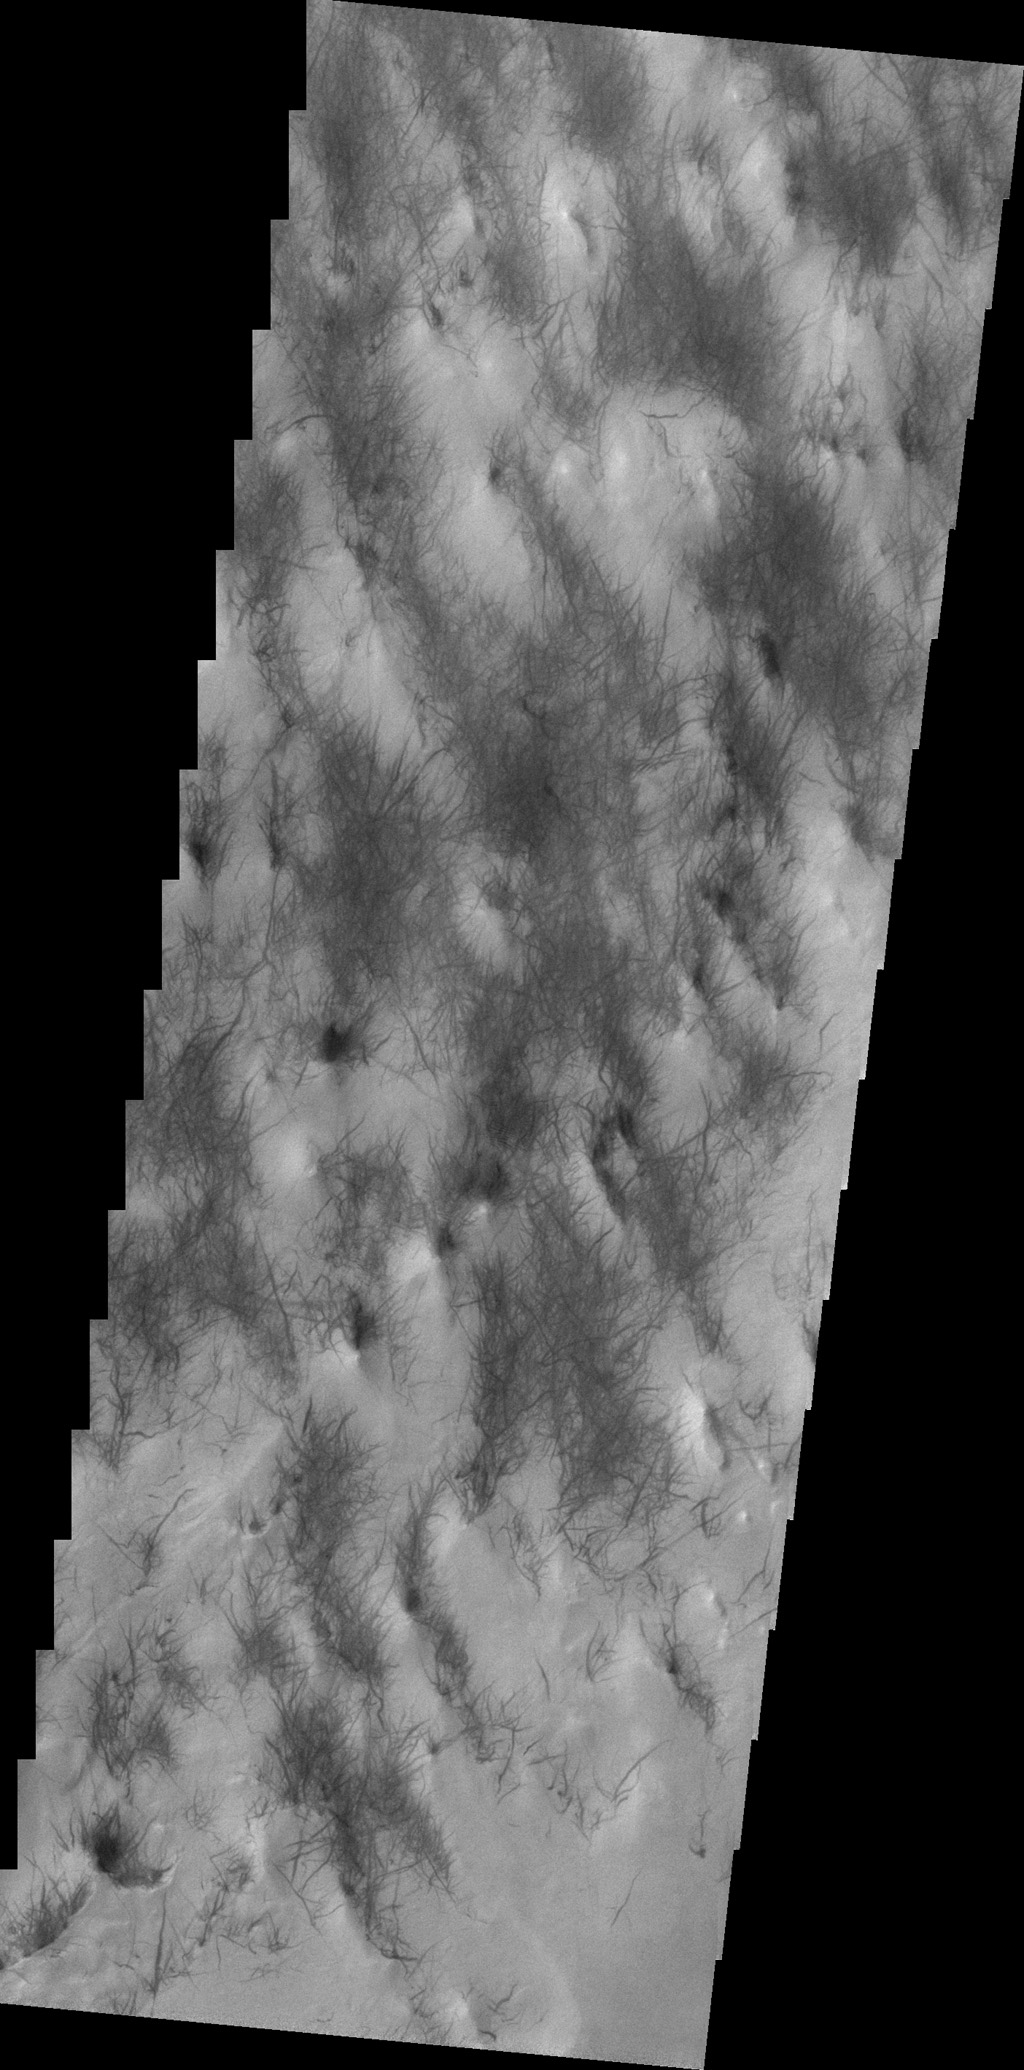 The dust devil tracks seen in this image from NASA's 2001 Mars Odyssey spacecraft are located in Argyre Planitia.